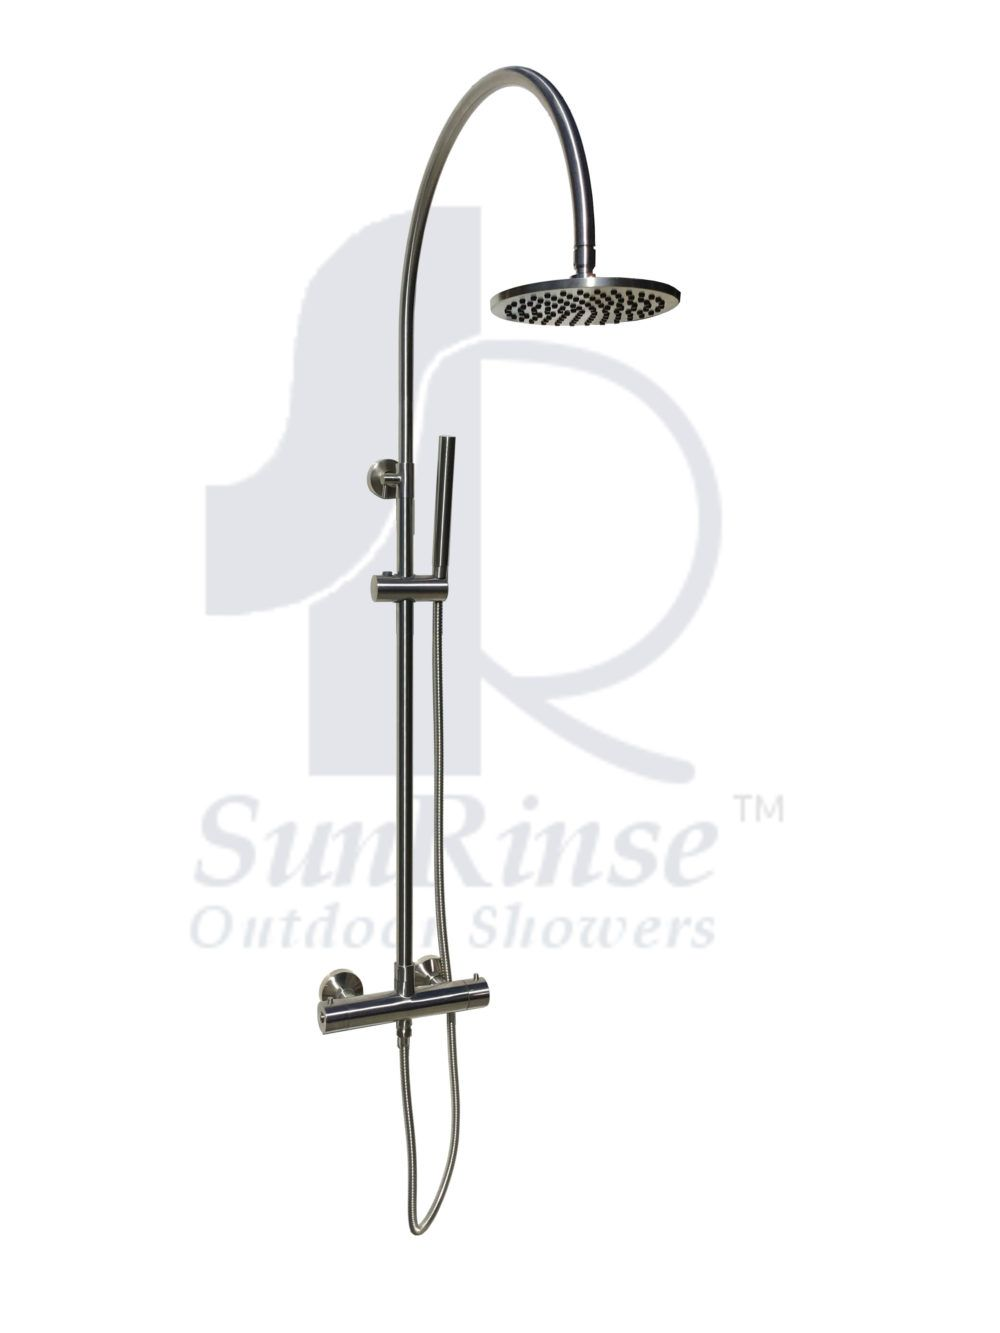 Outdoor Shower Fixture And Accessories Sunrinse Outdoor Showers